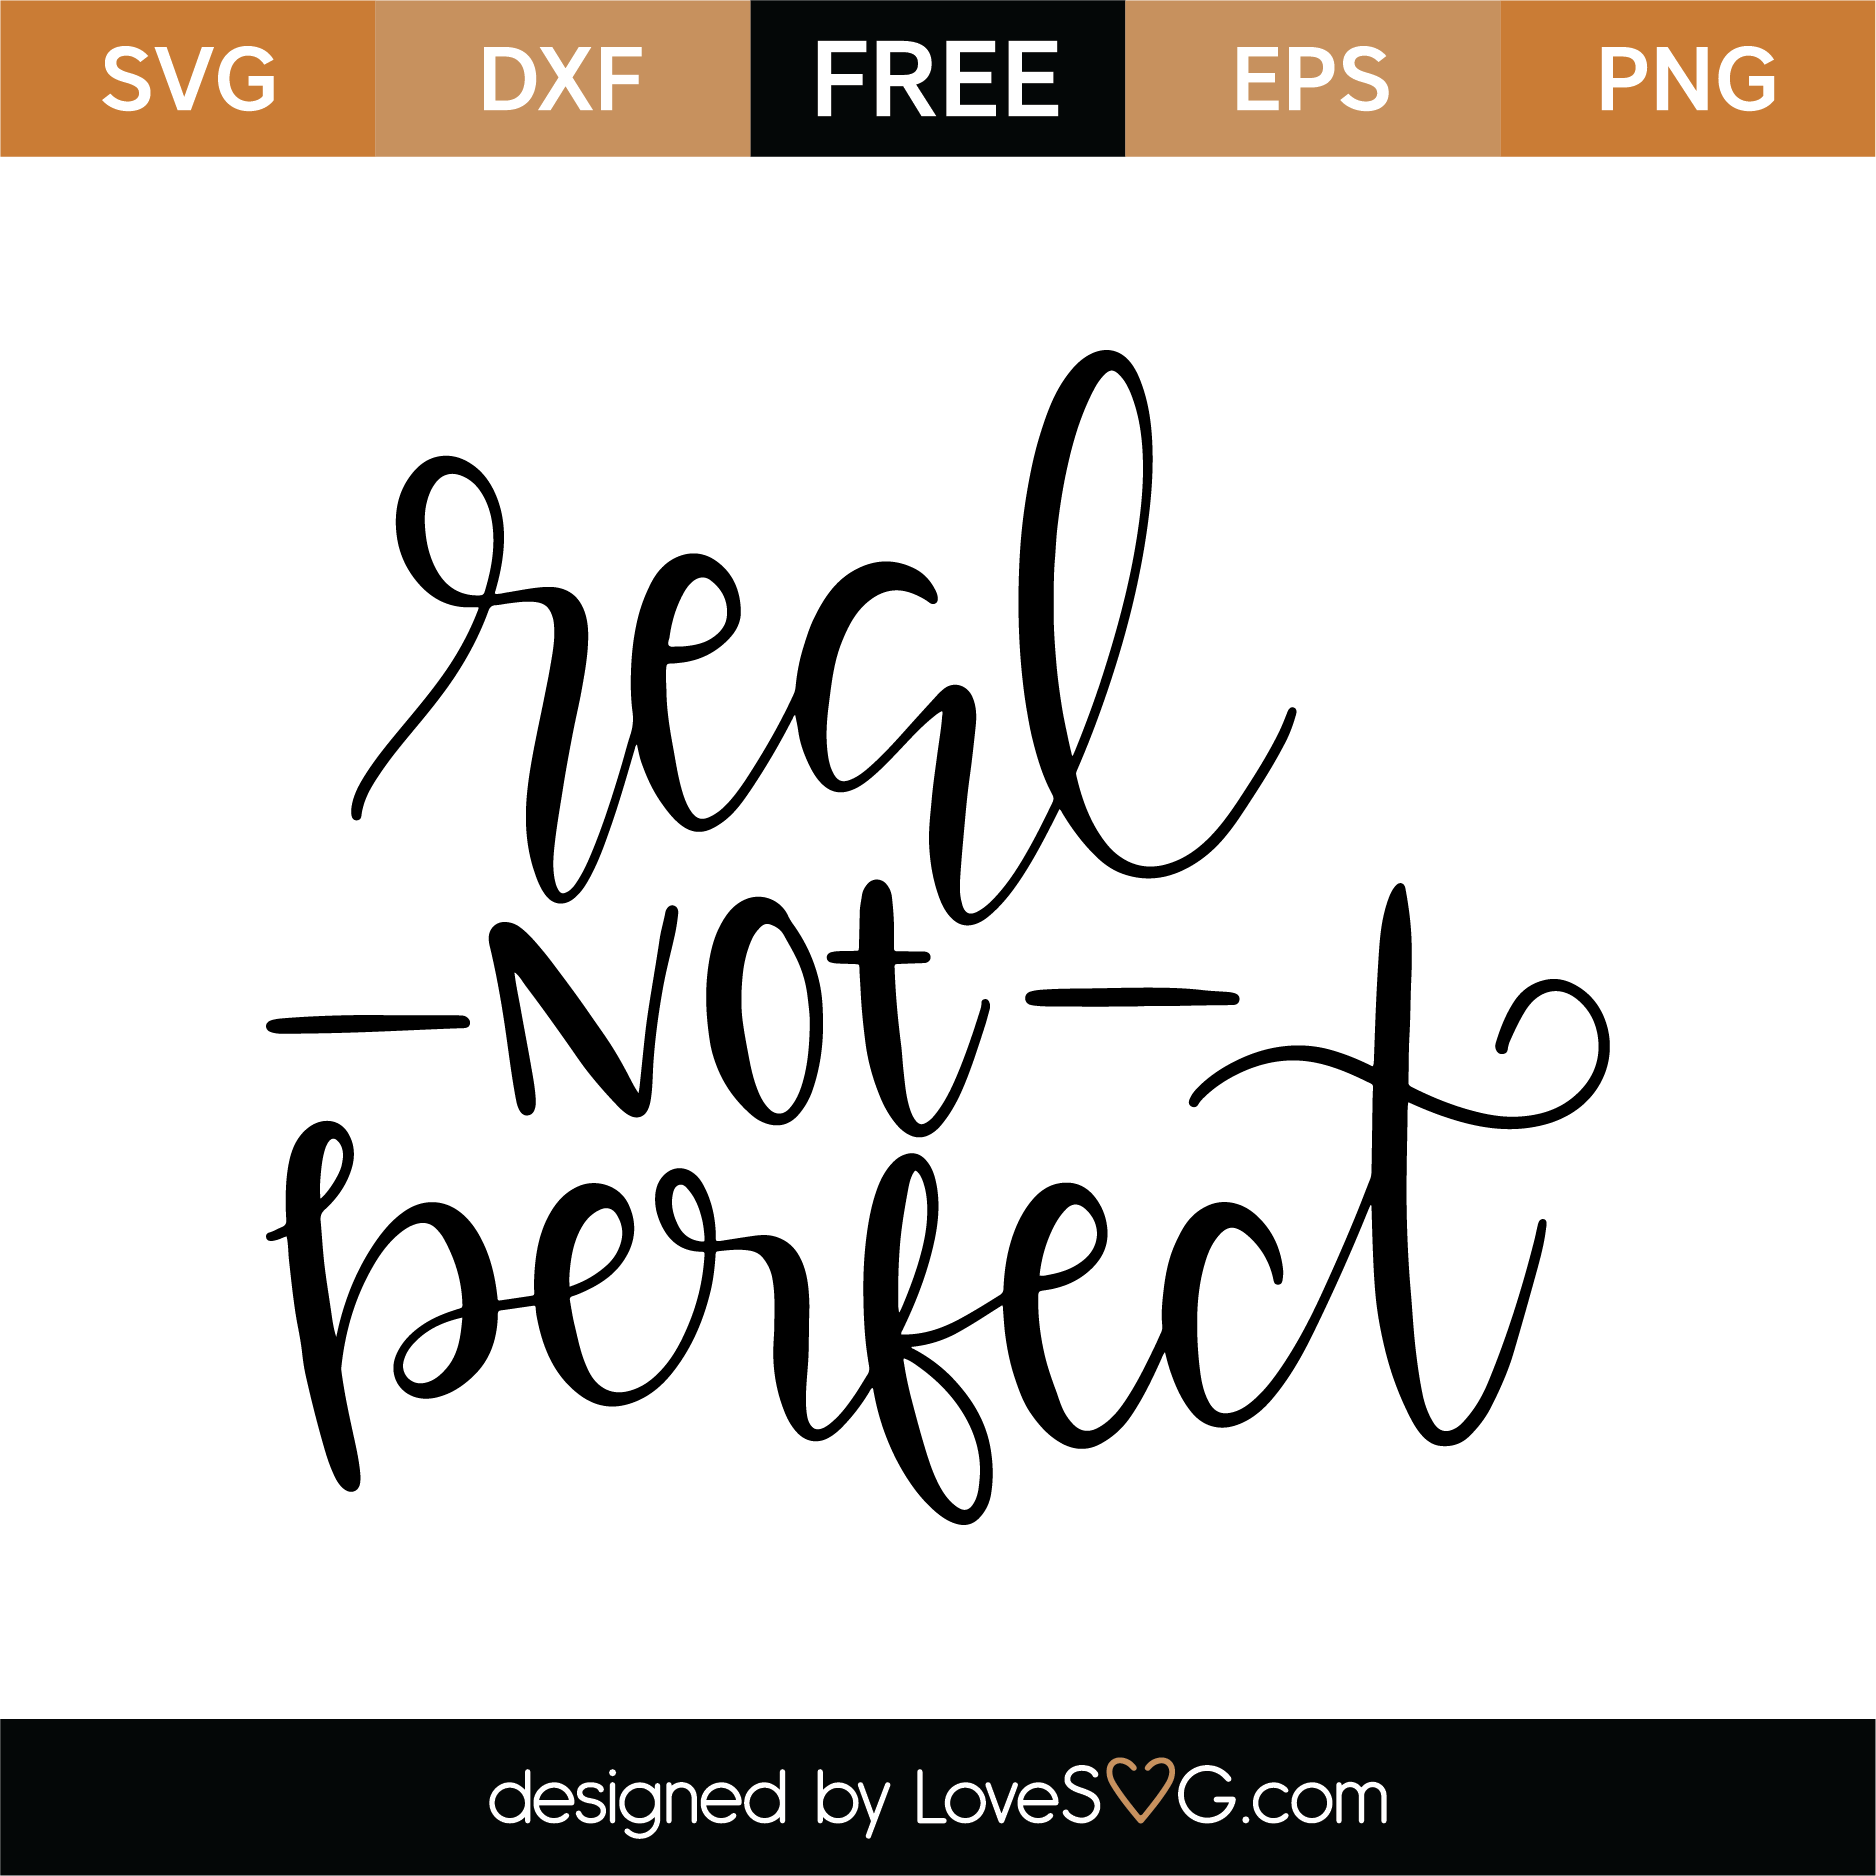 free downloadable vinyl cutting images